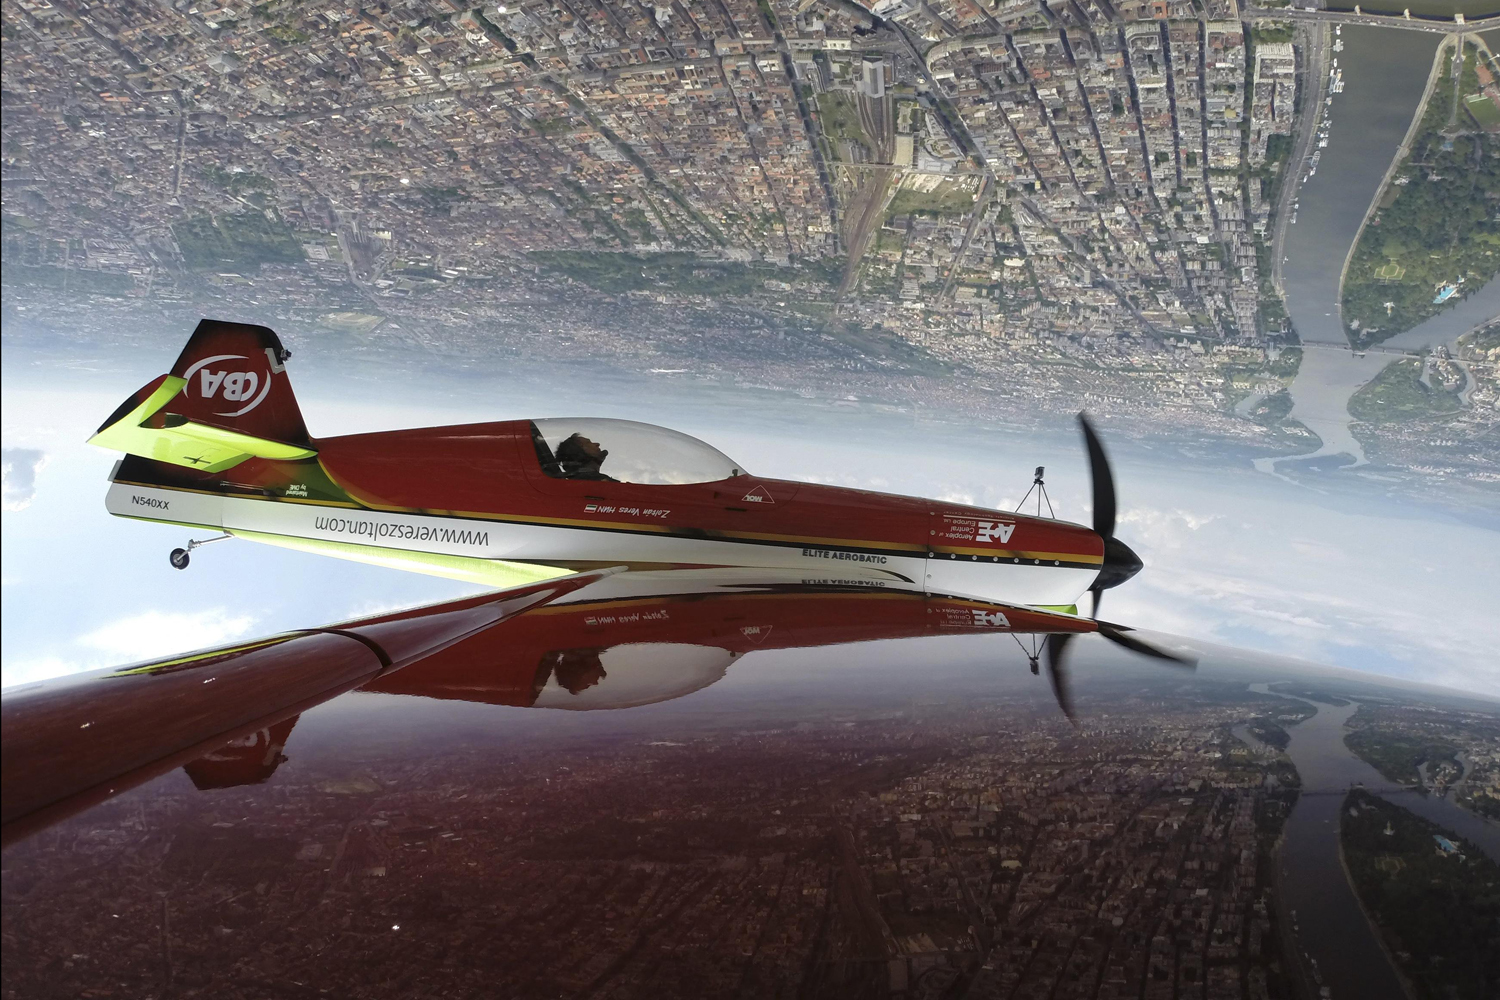 May 1, 2014.. Zoltan Veres of Hungary performs with his MXS airplane during an air show in Budapest, Hungary.